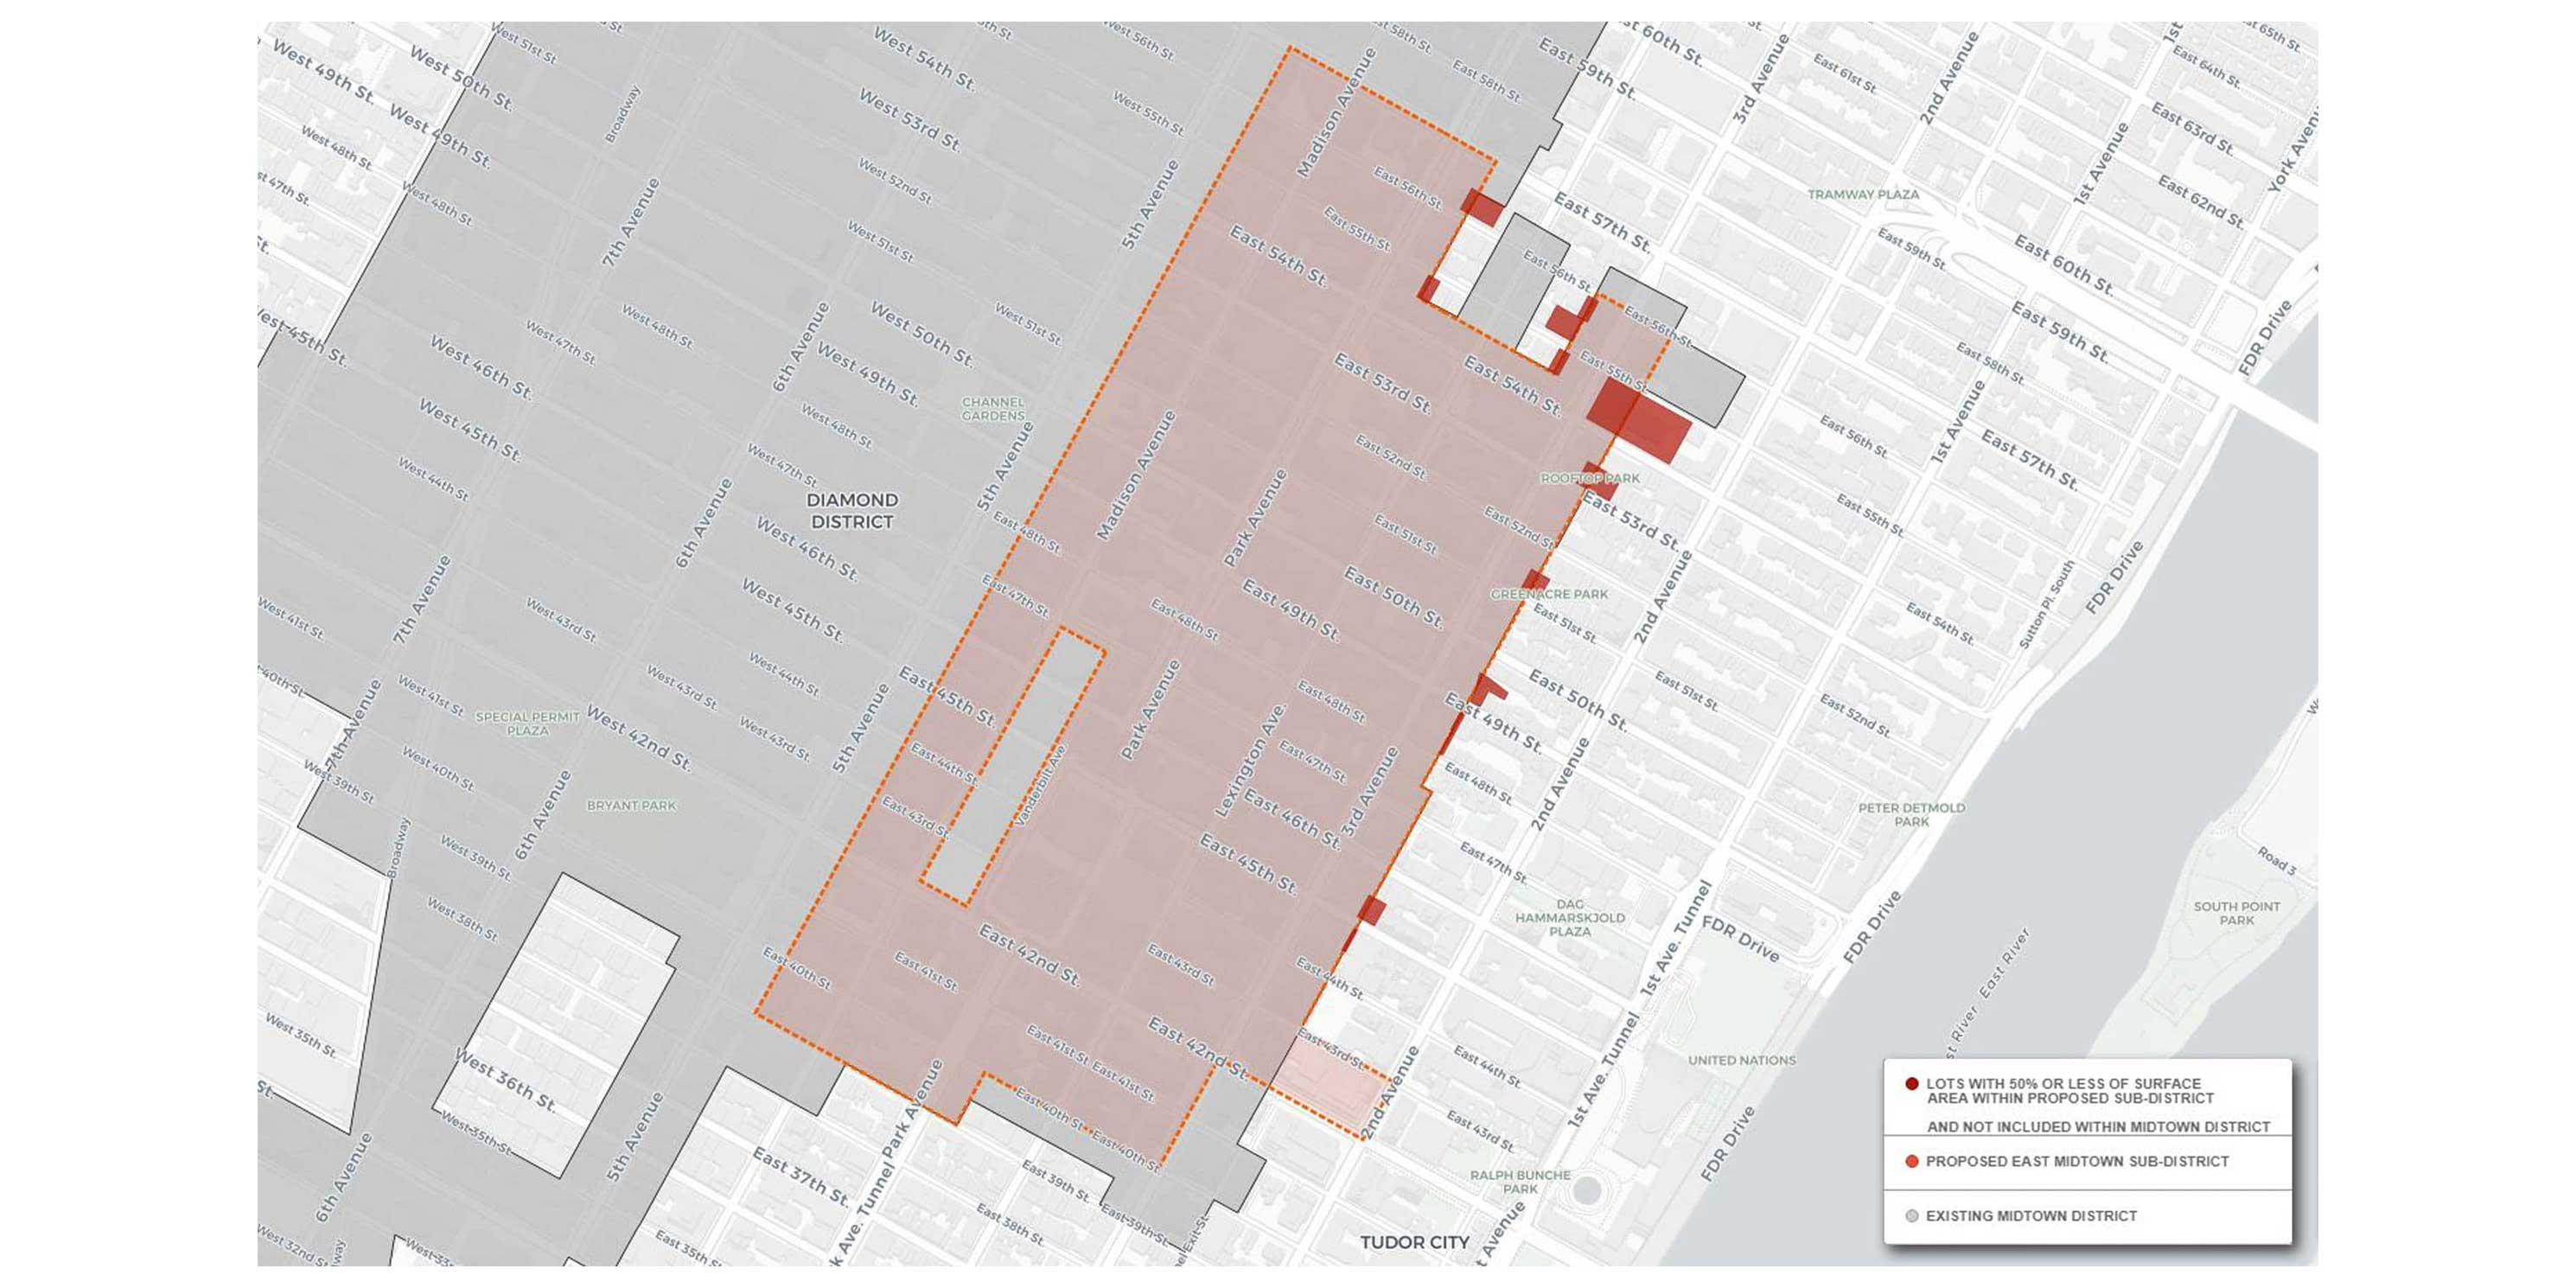 map of properties With Less Than 50 Percent Lot Area Within Proposed East Midtown Subdistrict